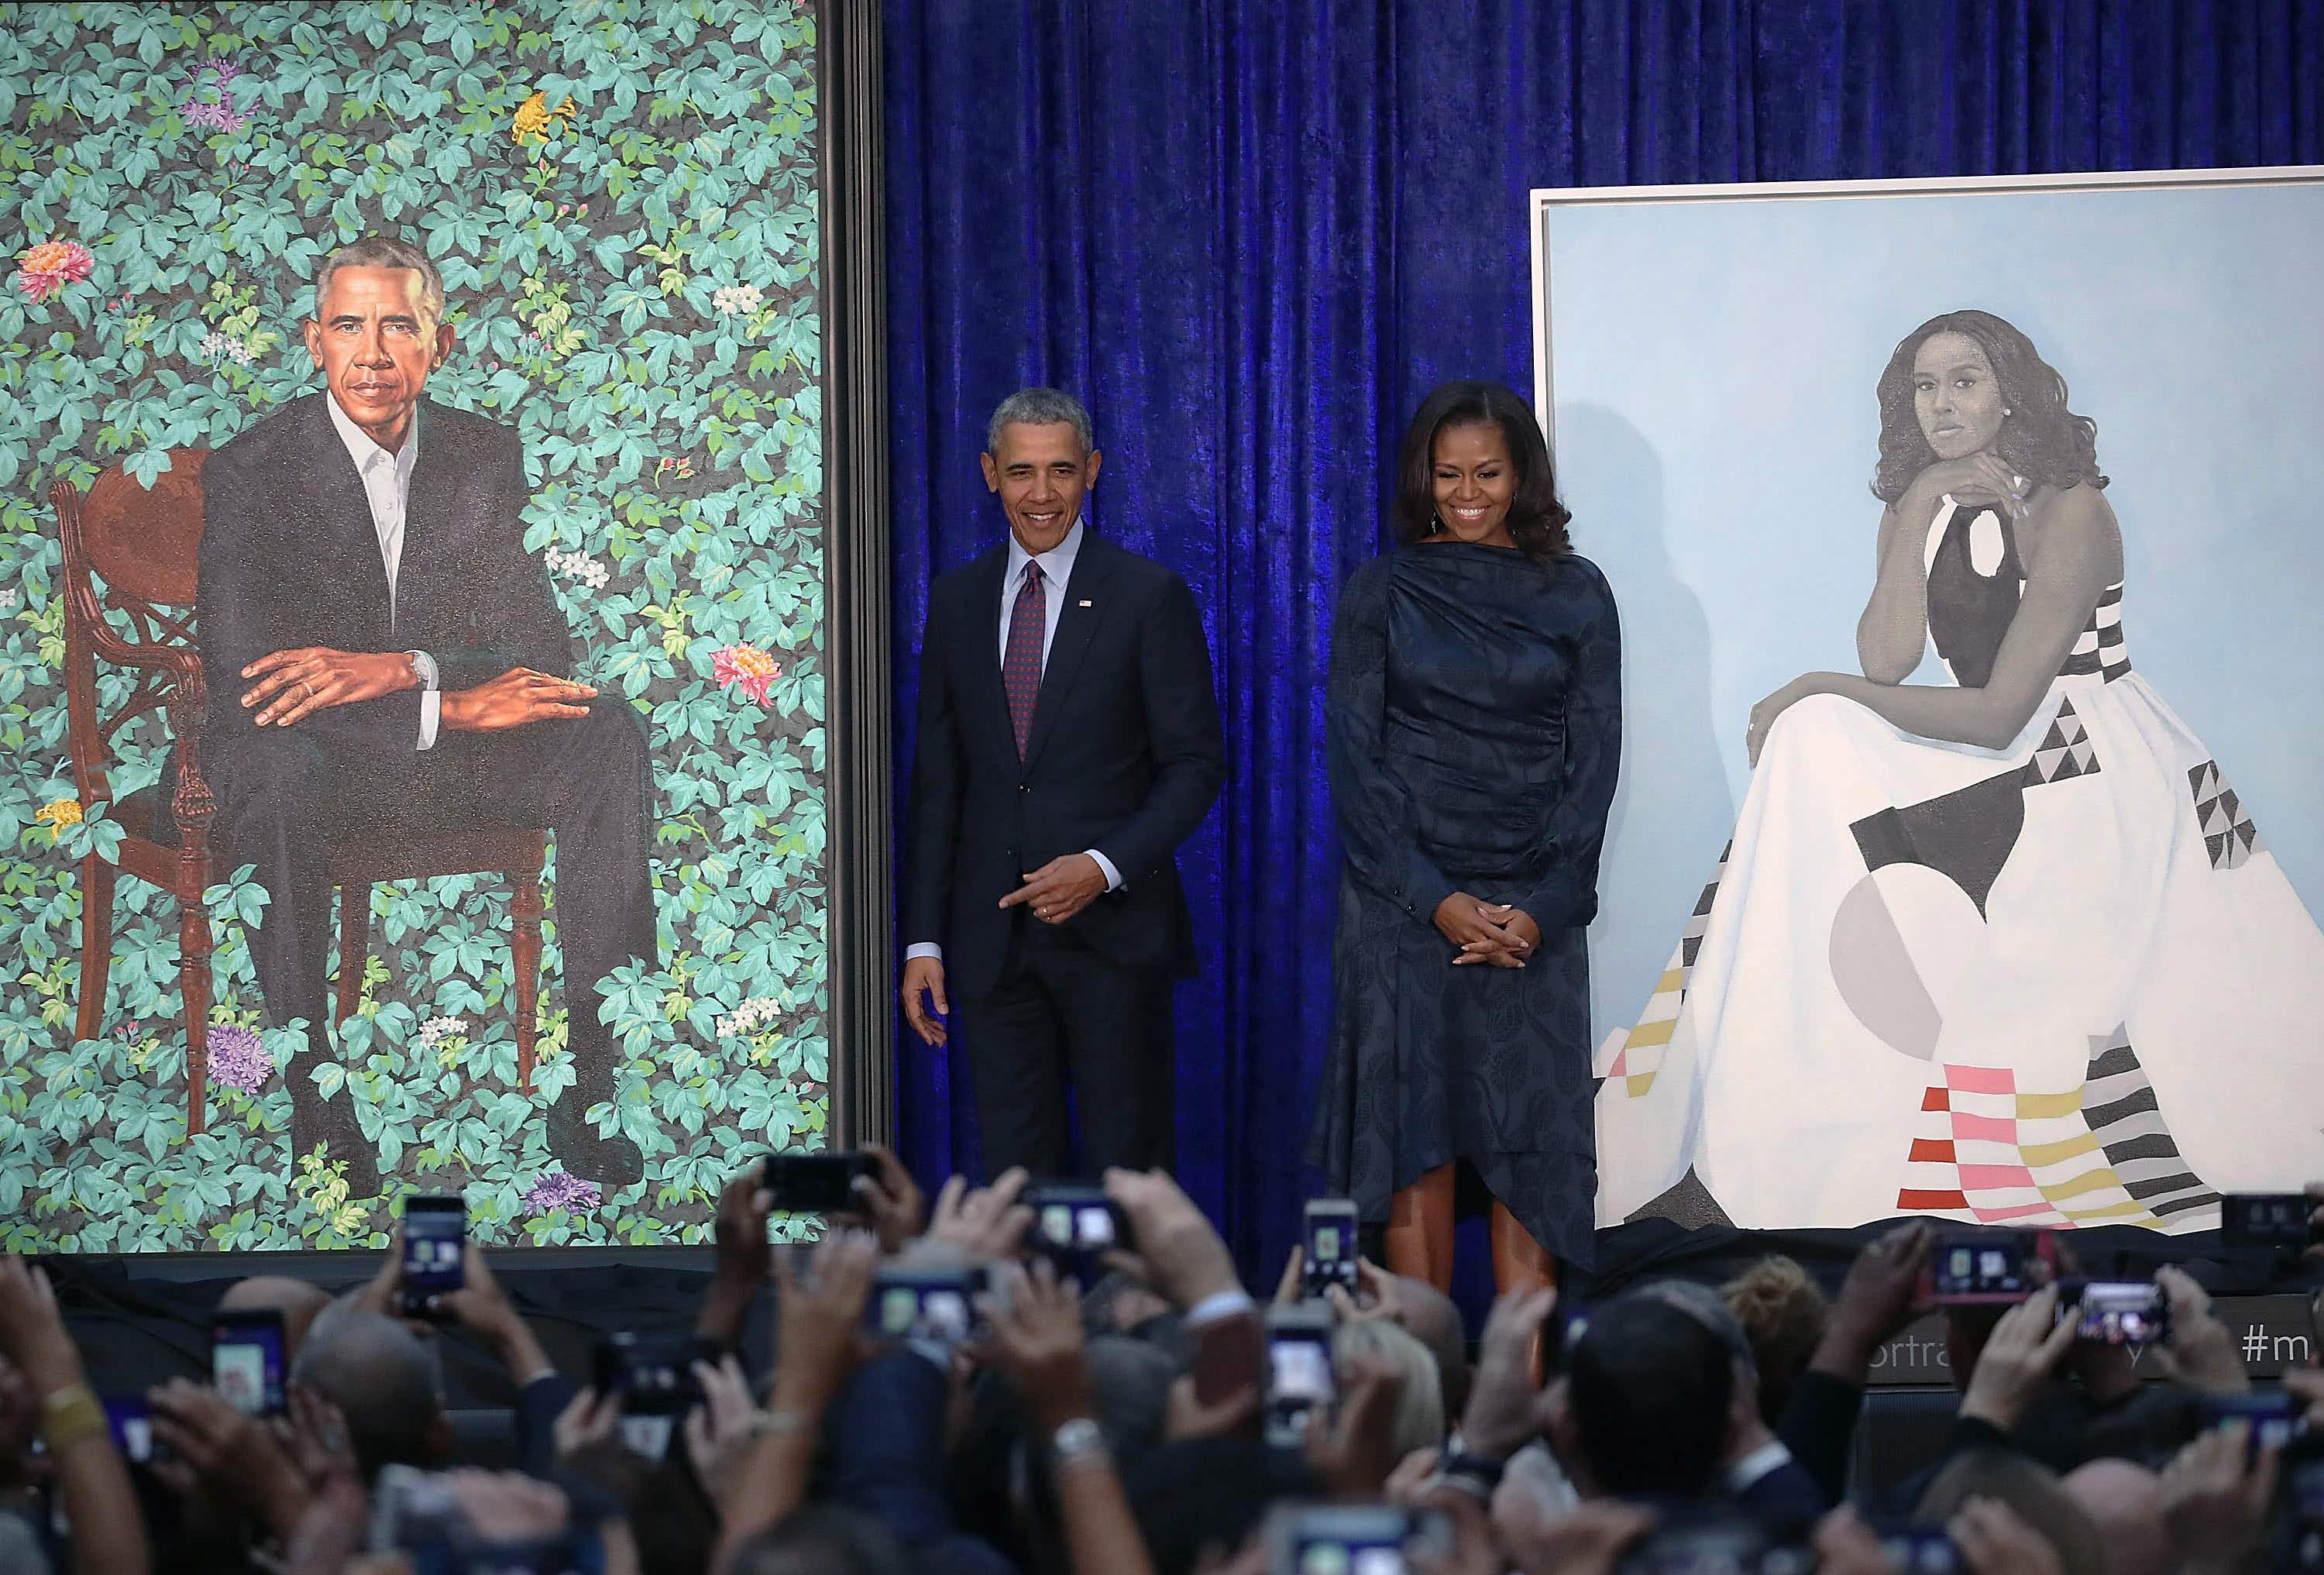 Paintings of Barack and Michelle Obama unveiled at the National Portrait Gallery